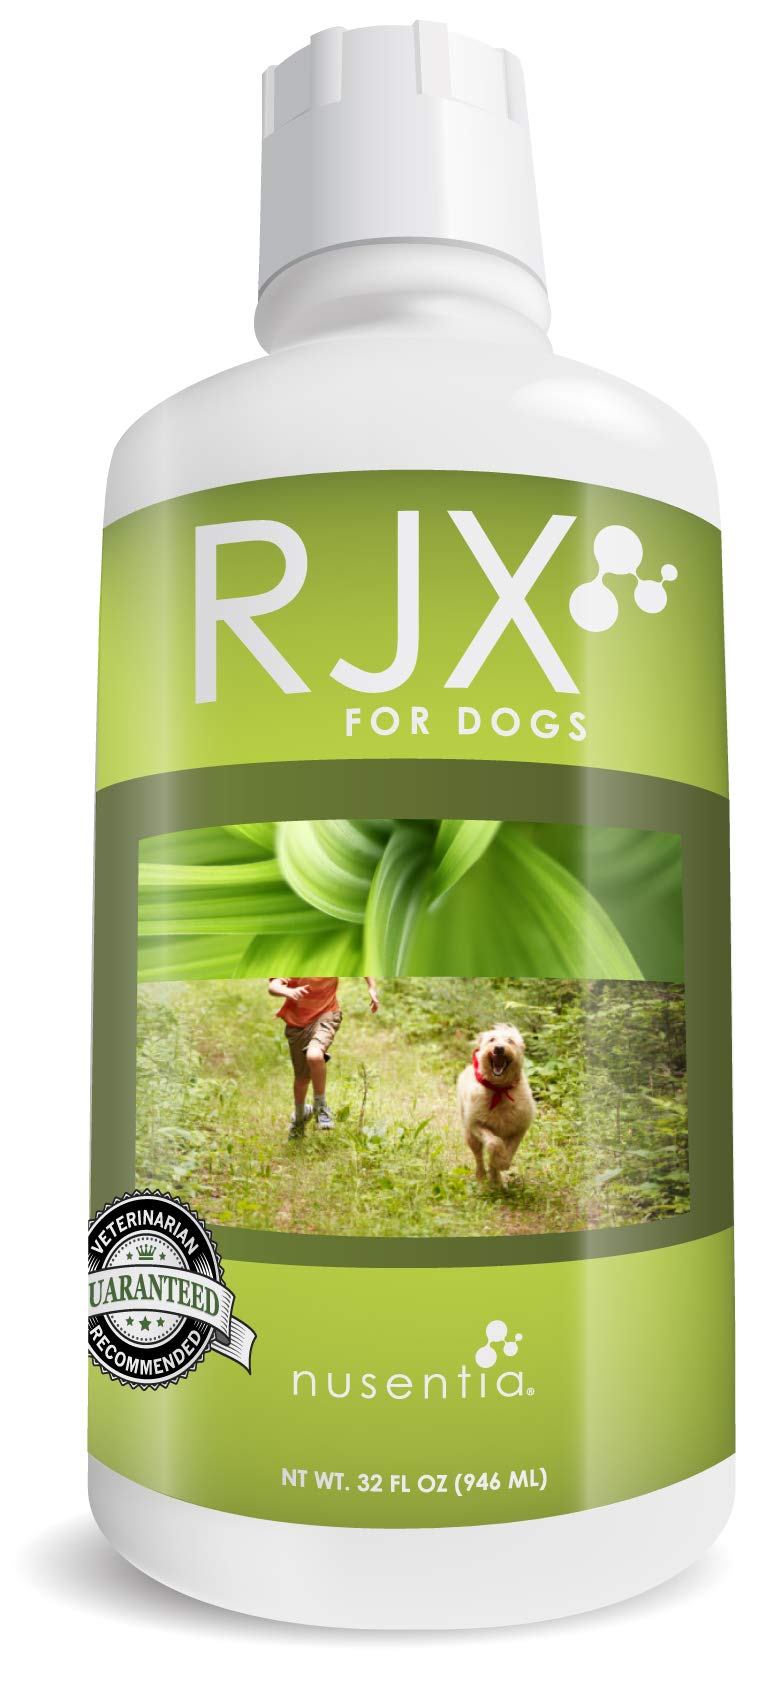 NUSENTIA Glucosamine for Dogs : RJX Canine Joint Support with Chondroitin and MSM. Ideal for Hip & Joint Problems, Arthritis, Pain, and Senior Dogs. Vet Recommended. All Natural. (32 oz) by NUSENTIA